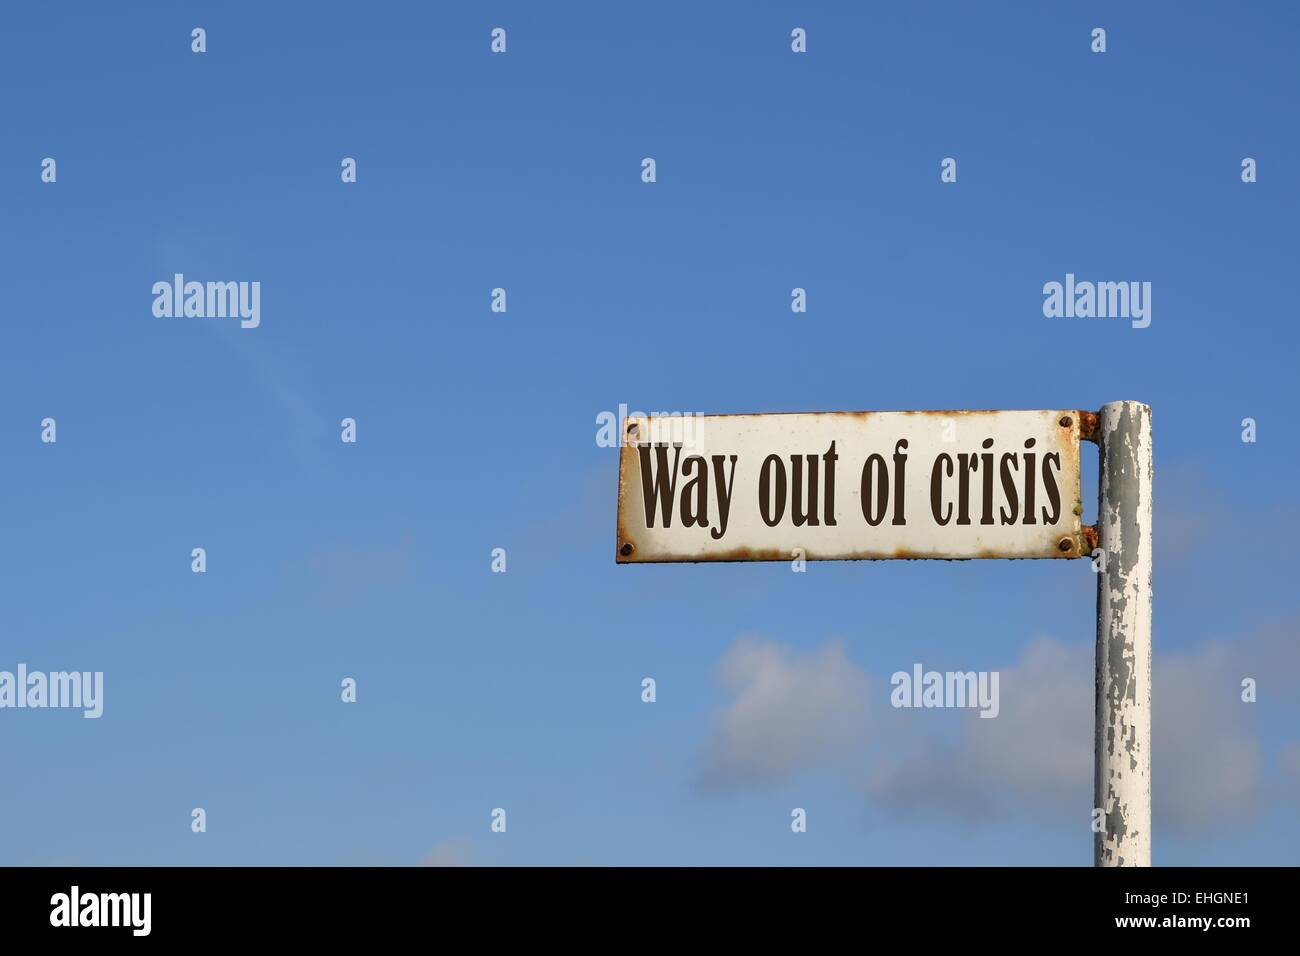 Way out of crisis Stock Photo